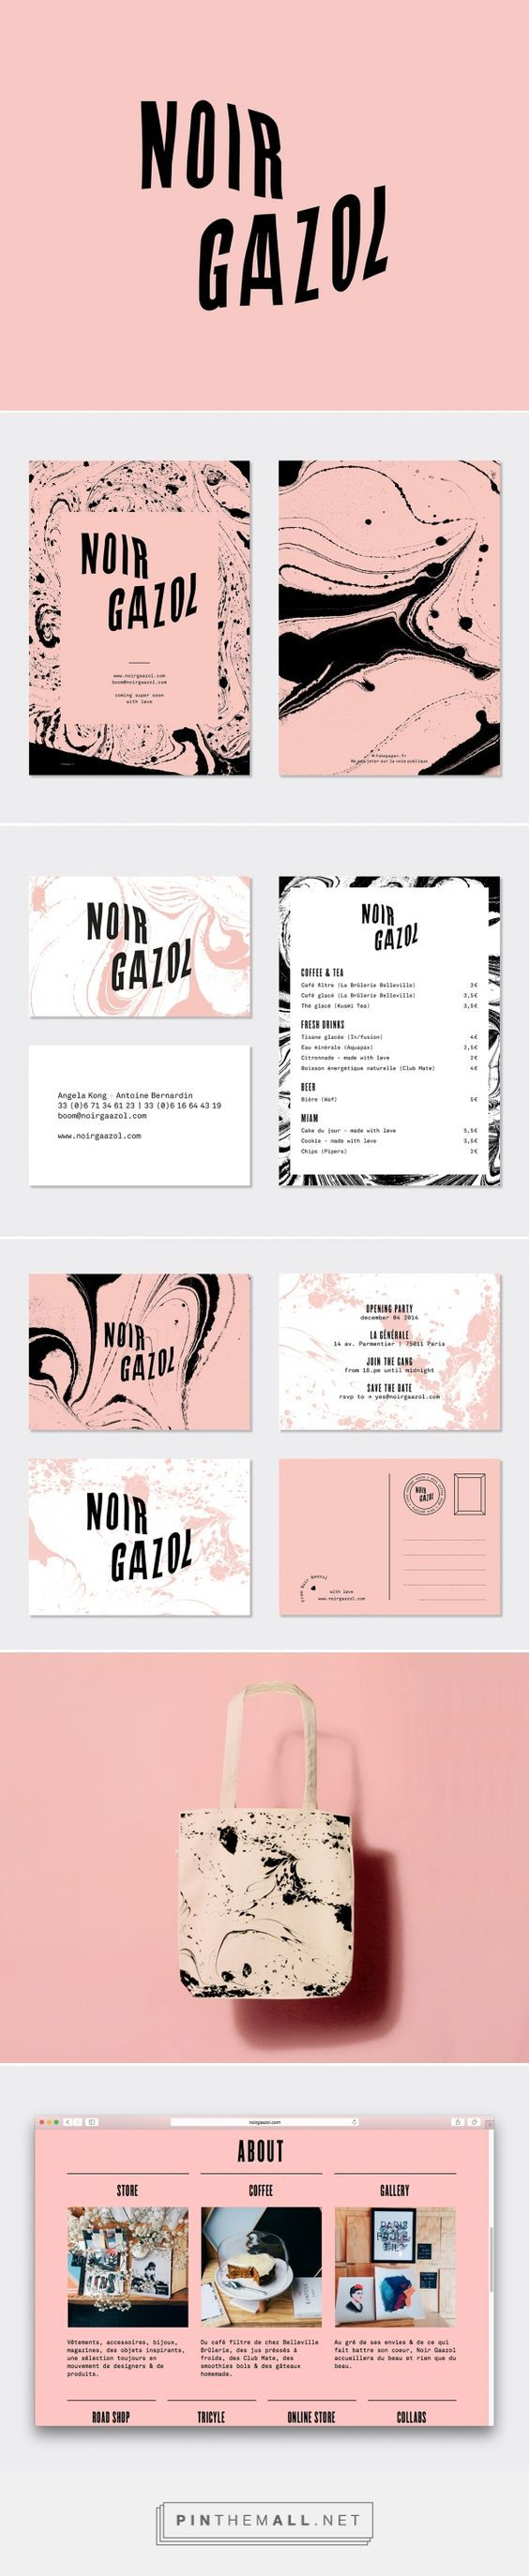 Noir Gaazol Branding by Fakepaper | Fivestar Branding – Design and Branding Agency & Inspiration Gallery: